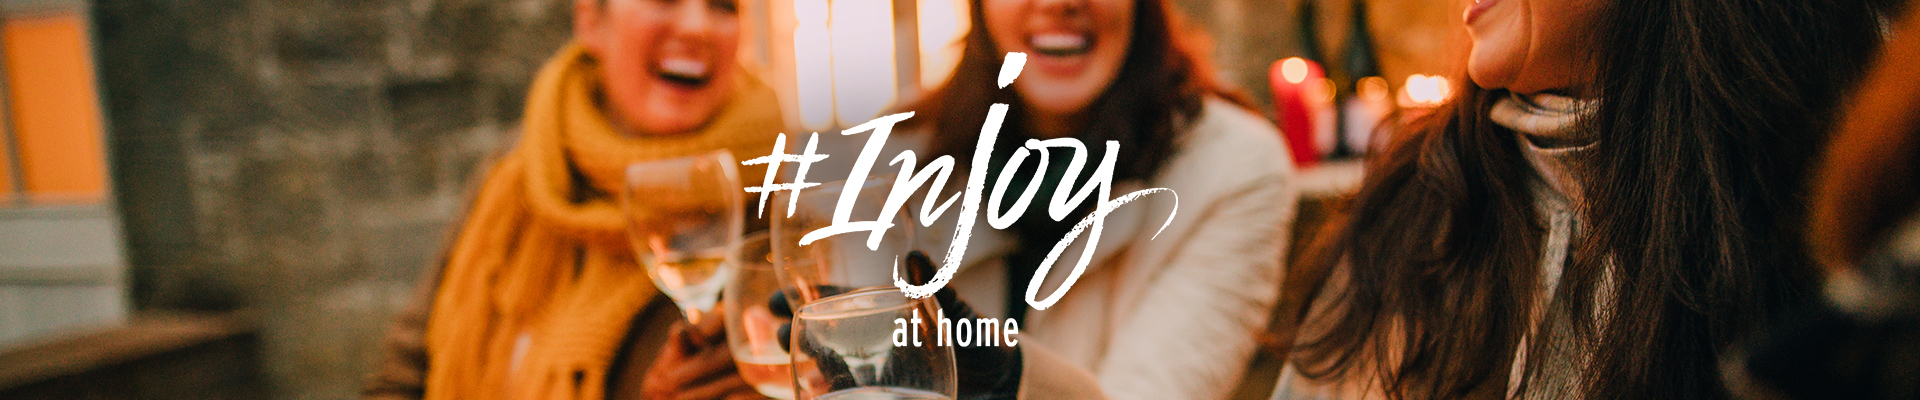 injoy at home banner